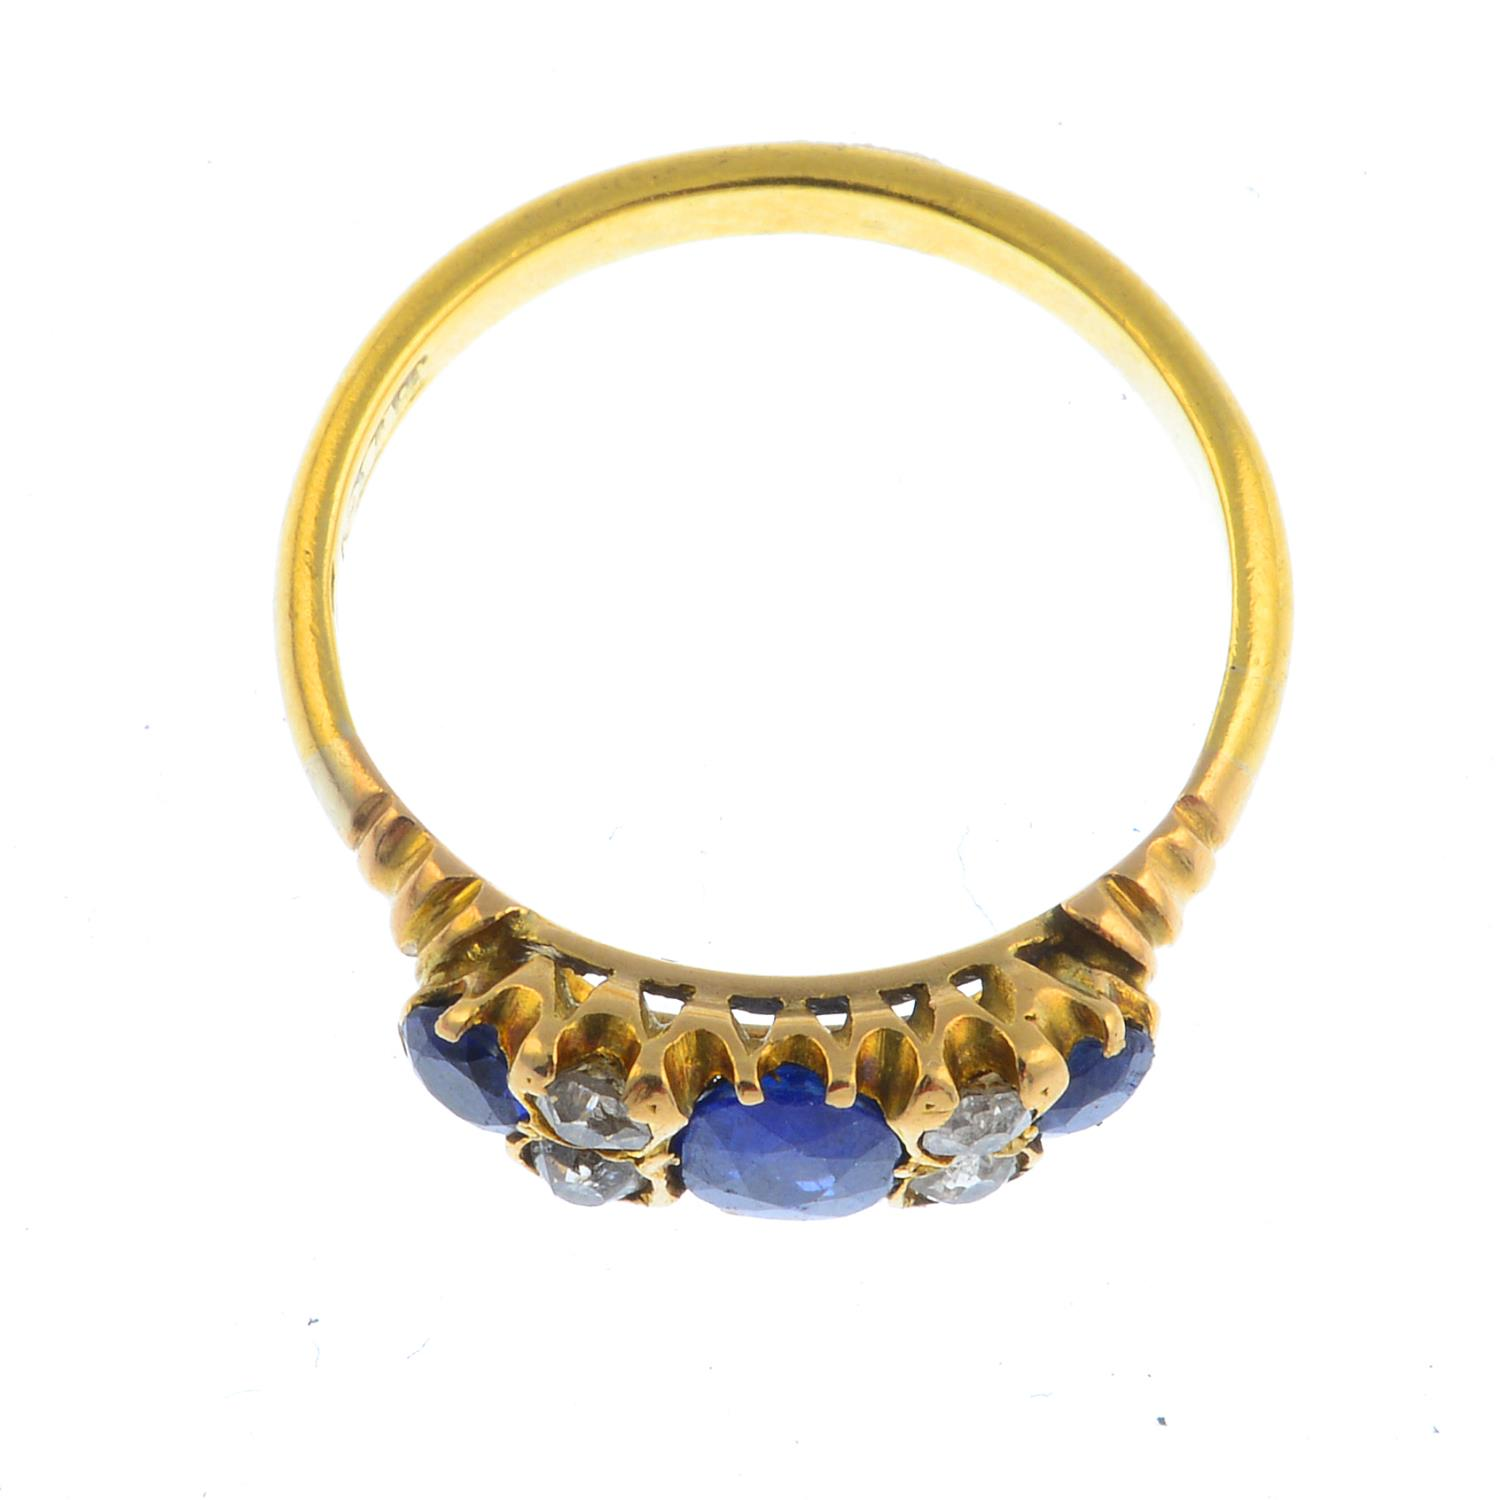 Lot 15 - An early 20th century 18ct gold sapphire and diamond ring.